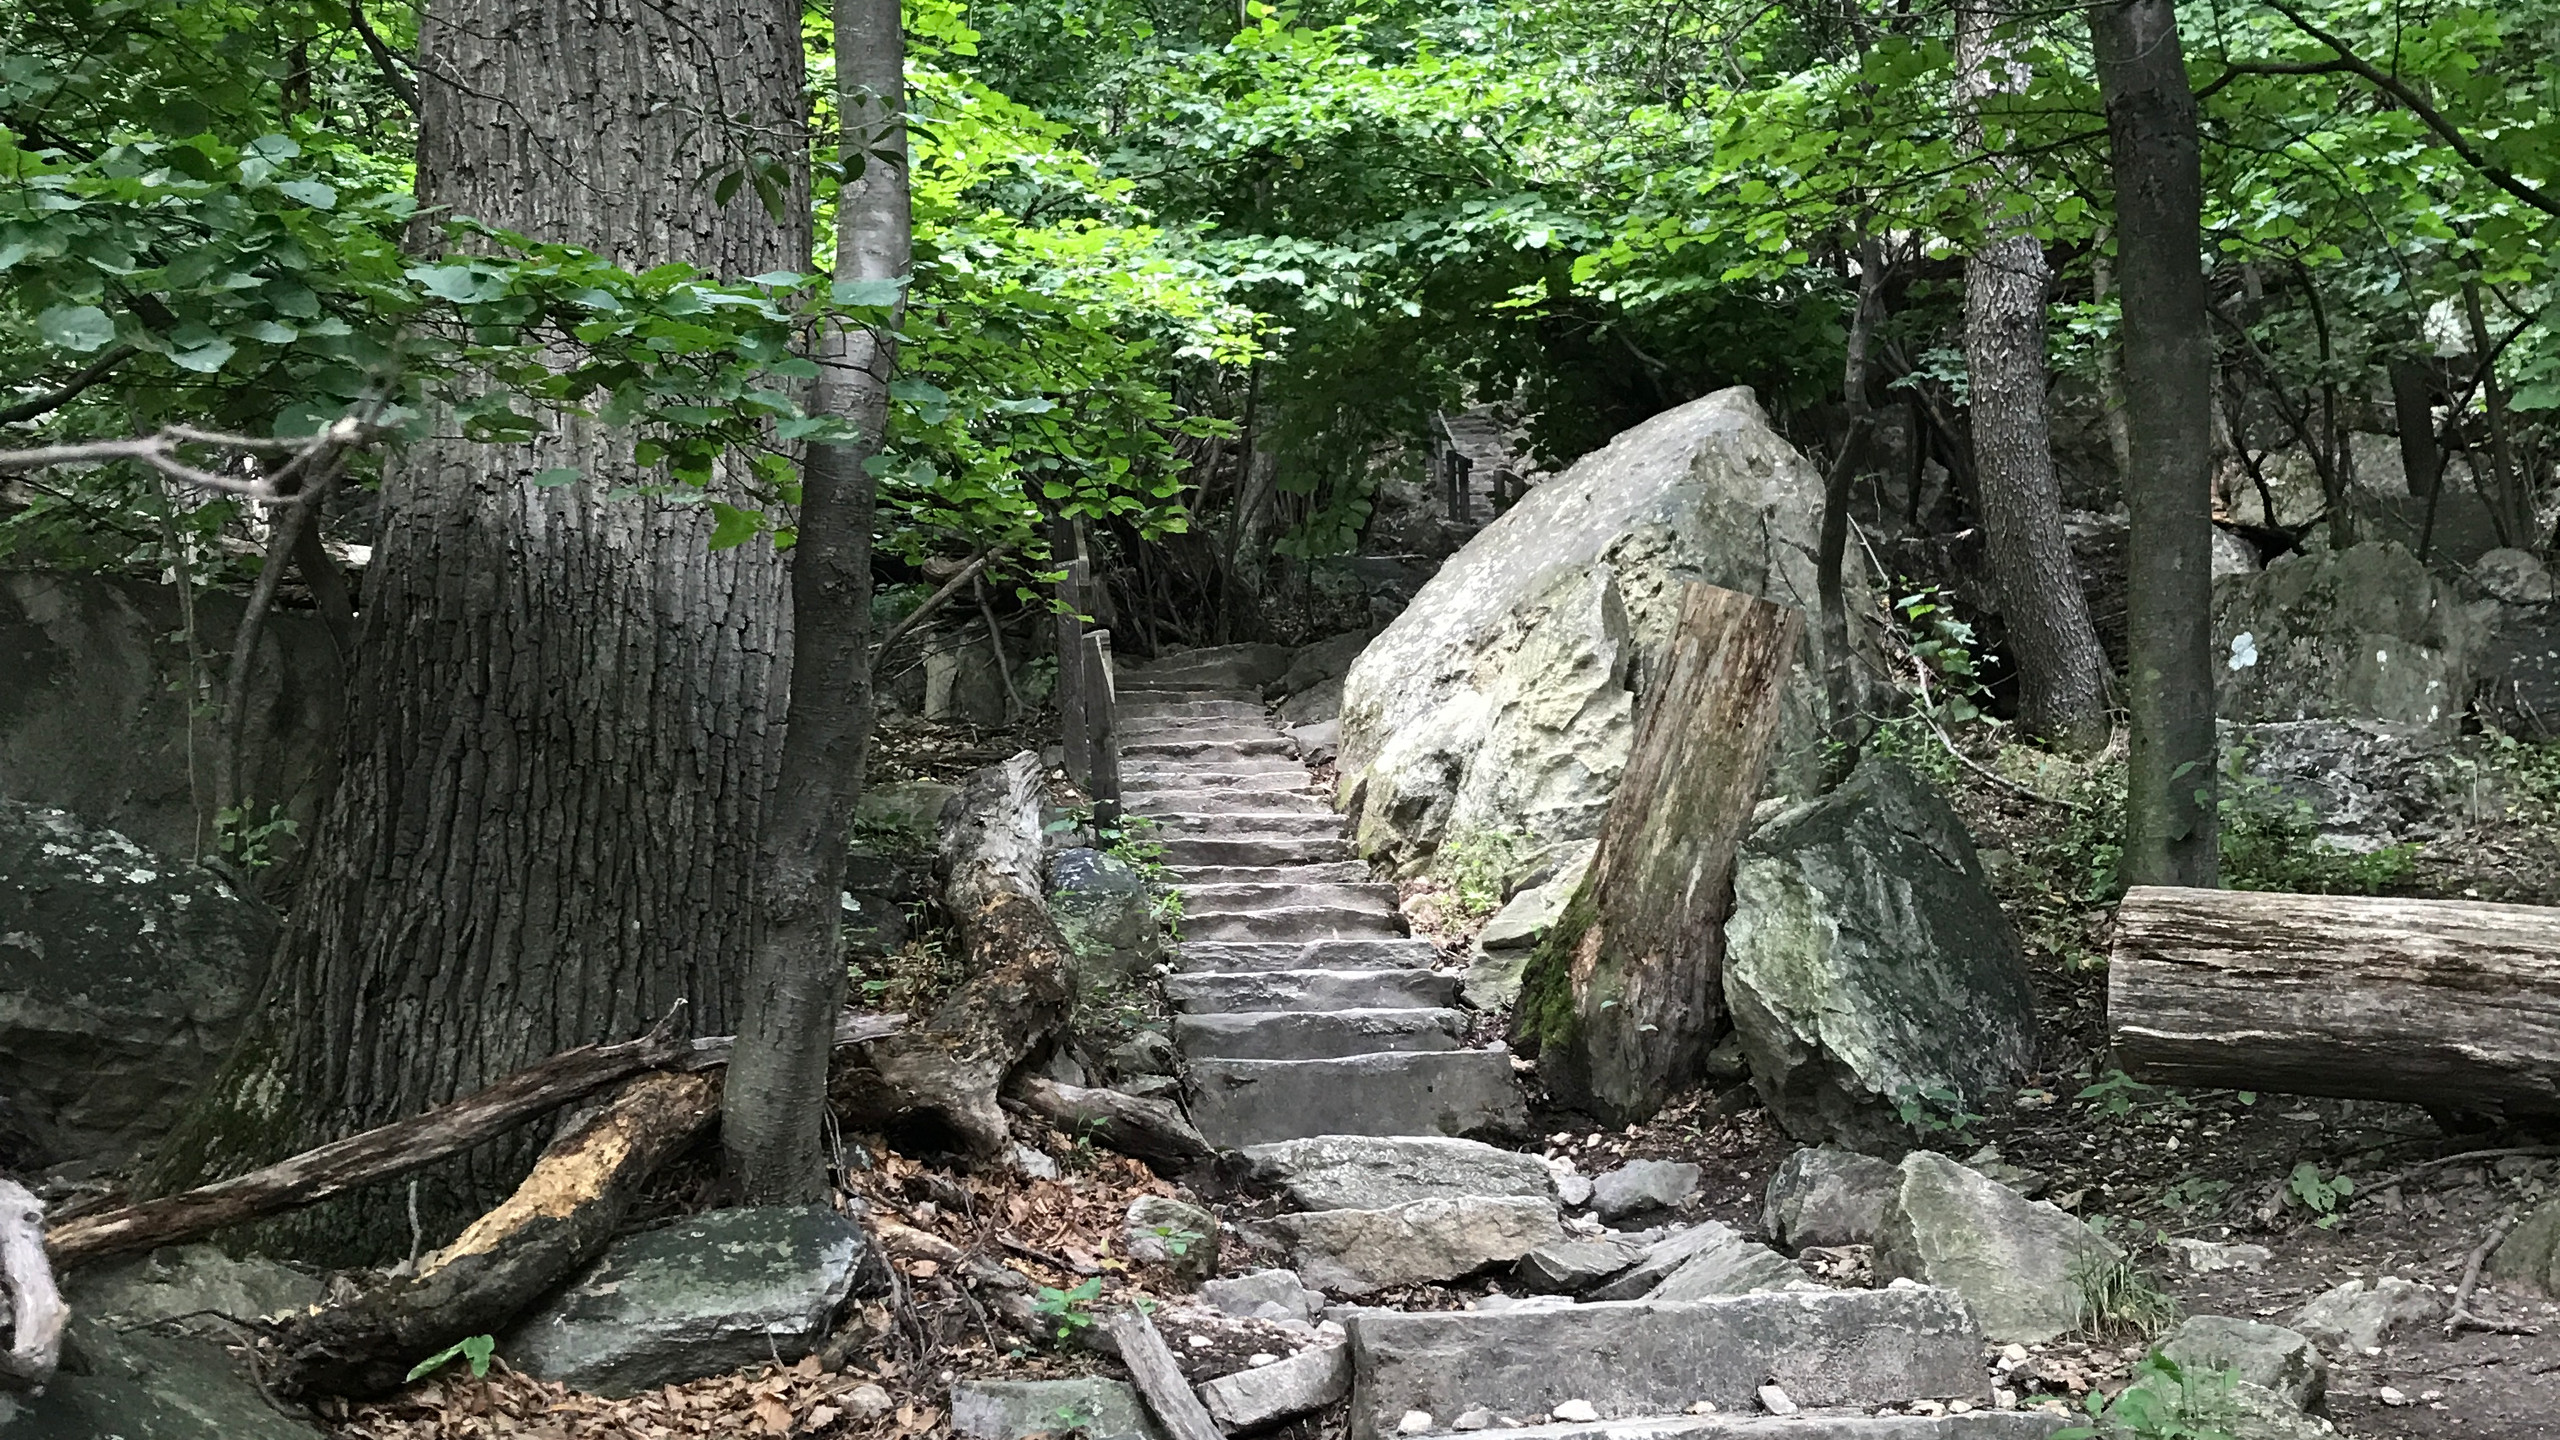 Stairs of the Green Trail